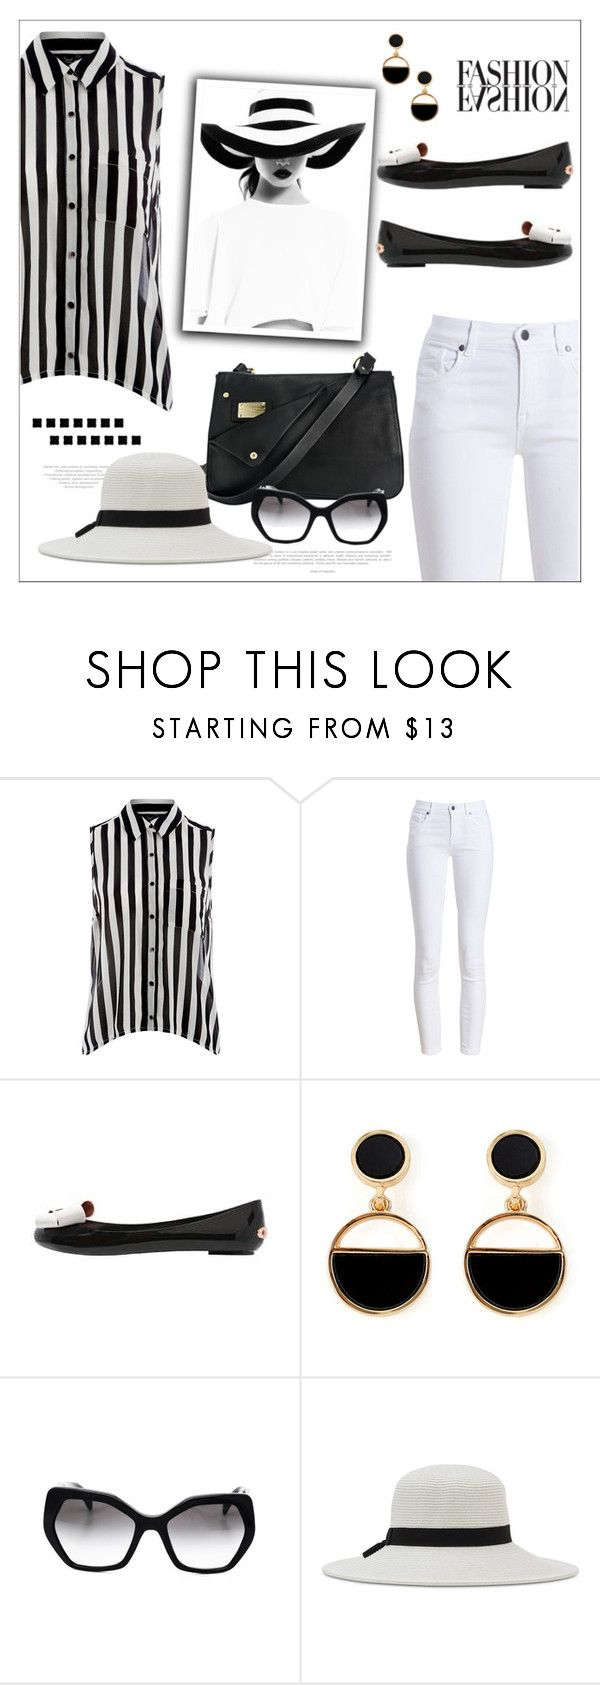 """Vertical Stripe Sleeveless Shirt"" by biange ❤ liked on Polyvore featuring Jumpo, Barbour, Frankie Morello, Ted Baker, Warehouse, Prada and Nine West"